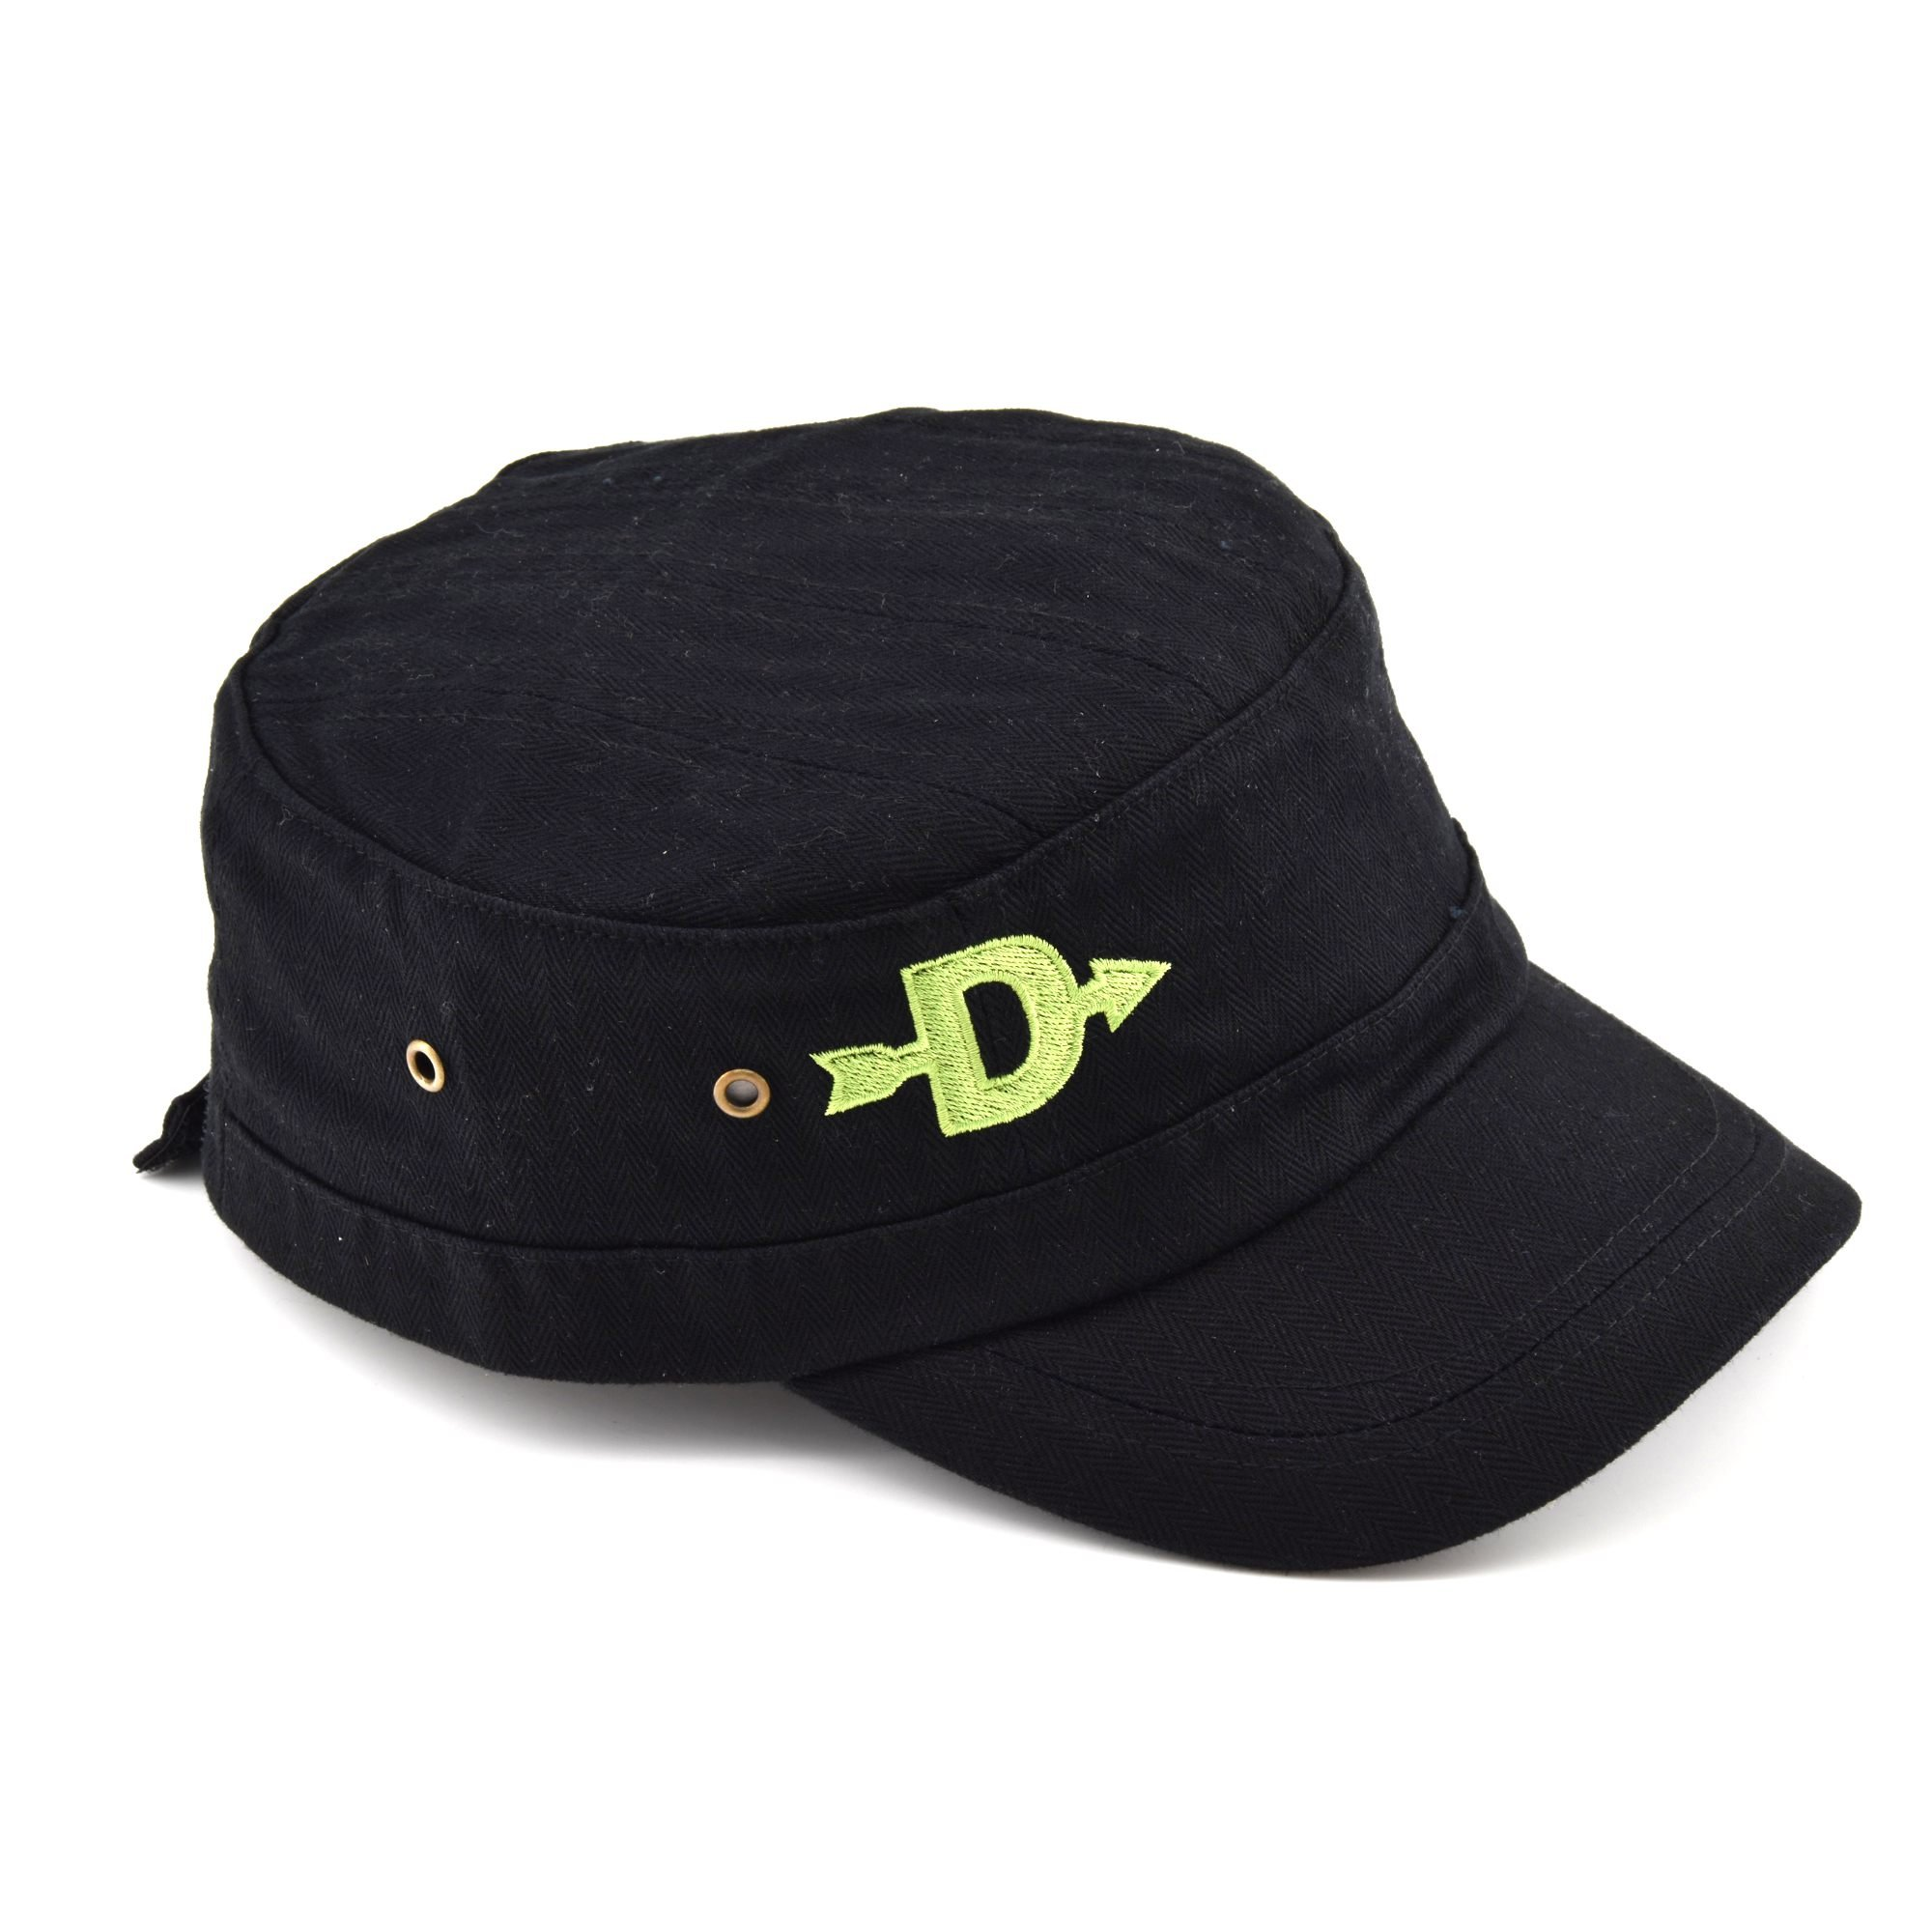 Deichpfeil Hunter Cap in schwarz